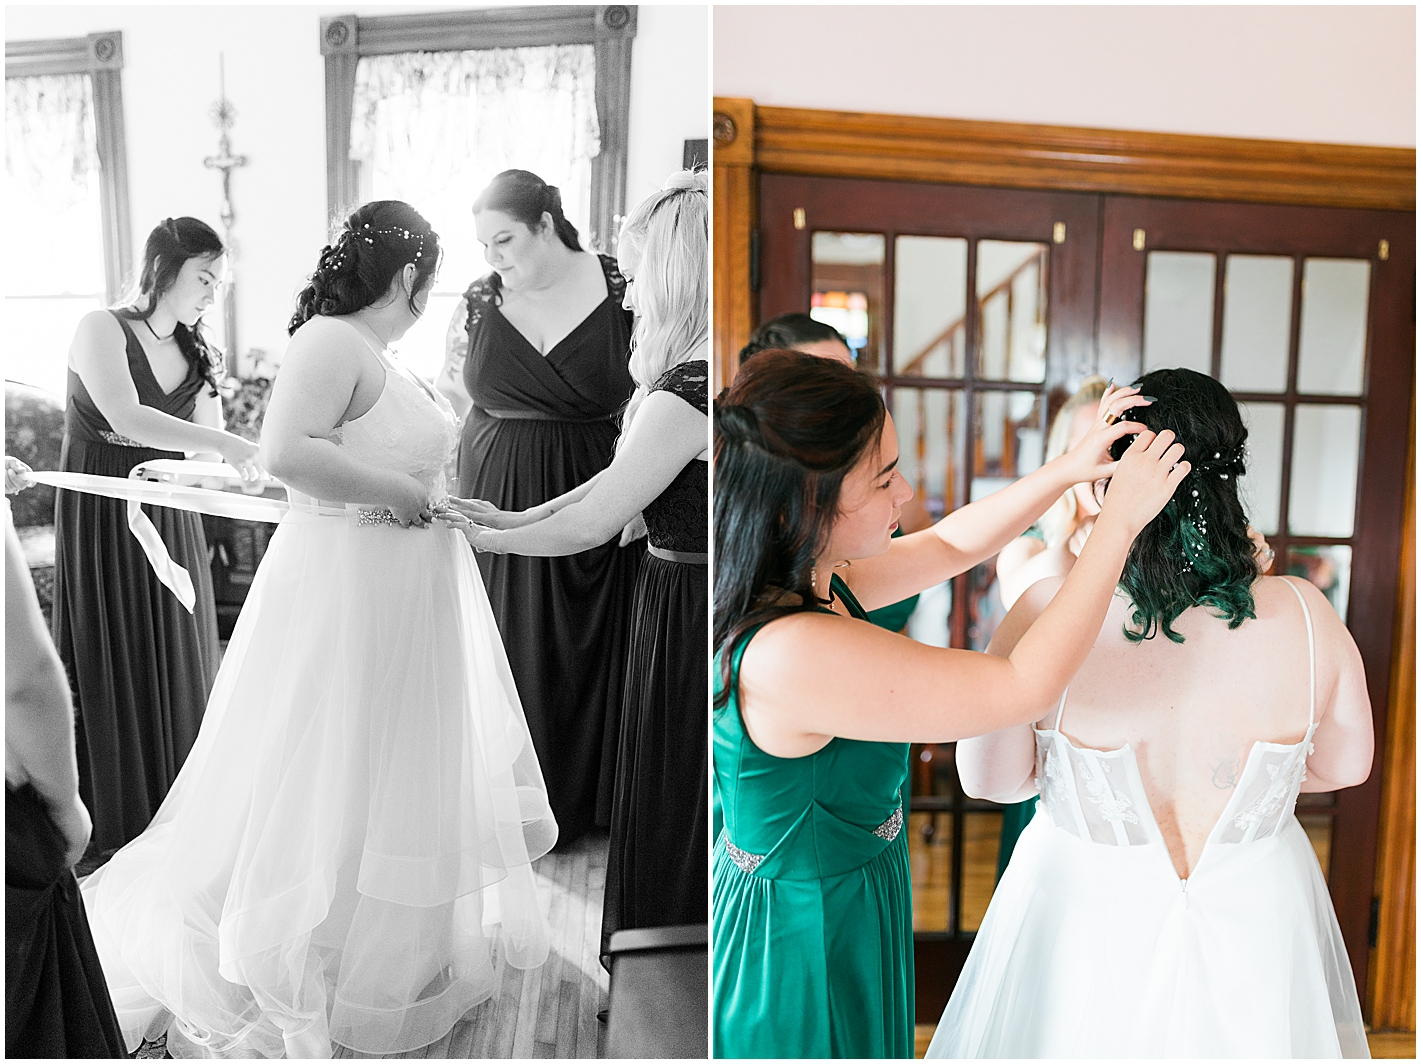 Bride getting ready Photo by Alyssa Parker Photography